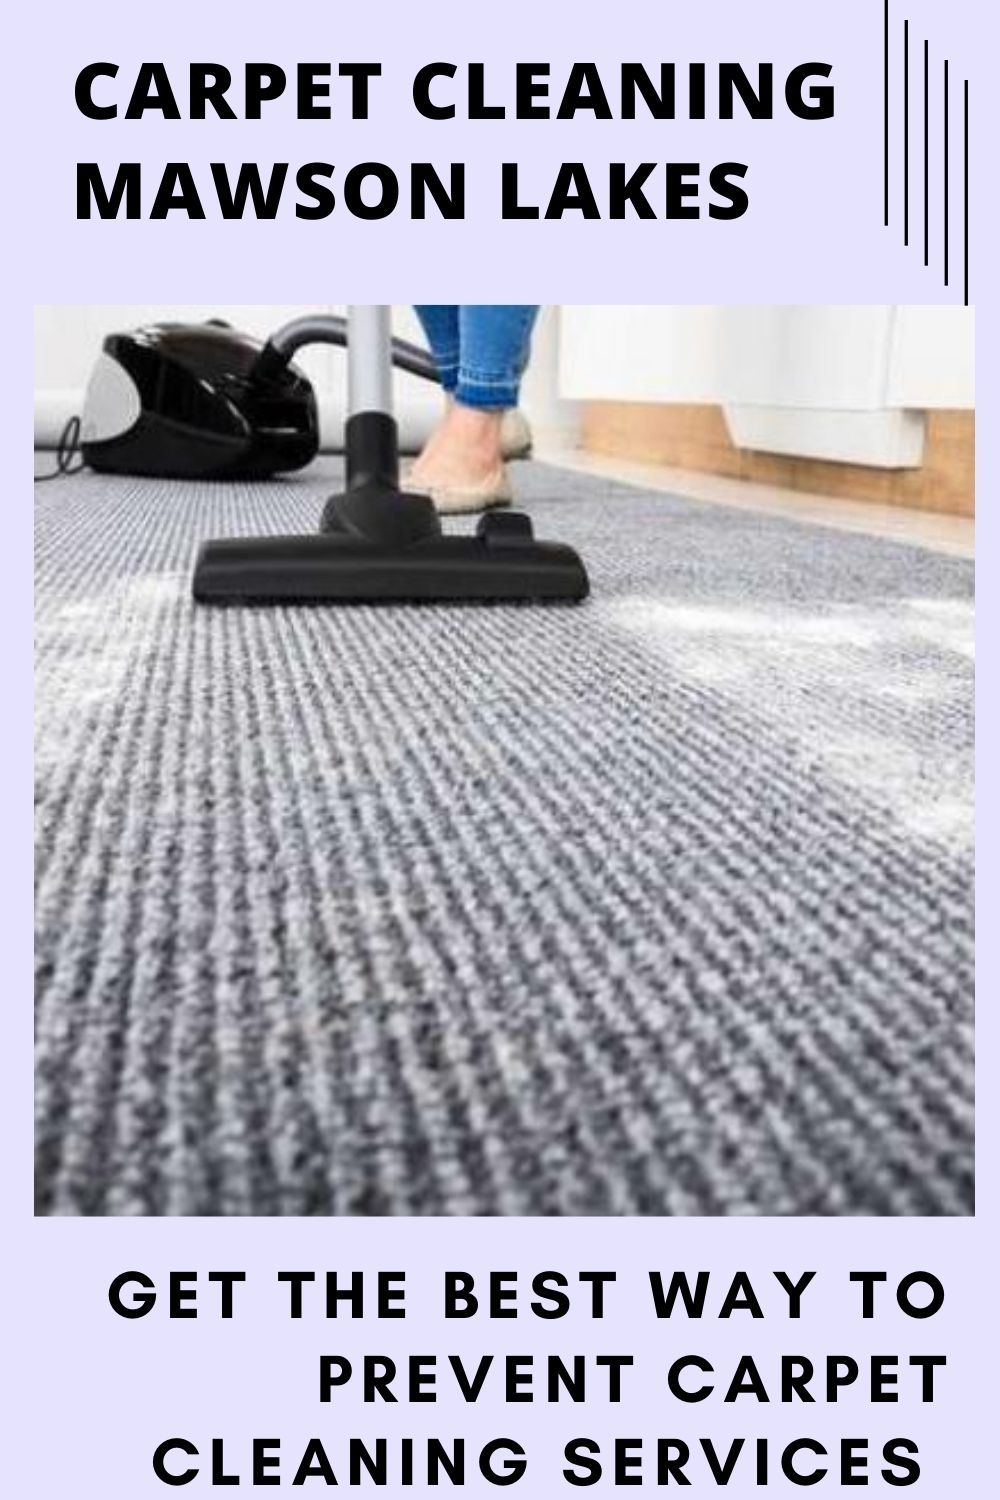 Hire Carpet Cleaning Mawson Lakes we are here to provide the best carpet cleaning services at lower prices. Get all type of services like carpet steam cleaning service, carpet dry cleaning service, carpet shampooing service, carpet odour removal service and more. We always give a quick response and the same day cleaning services in #MawsonLakes. All you have to do is call us on 0488 811 269. #carpetcleaningservice #carpetcleaning #residentialcleaning #housecleaning #carpetcleaner